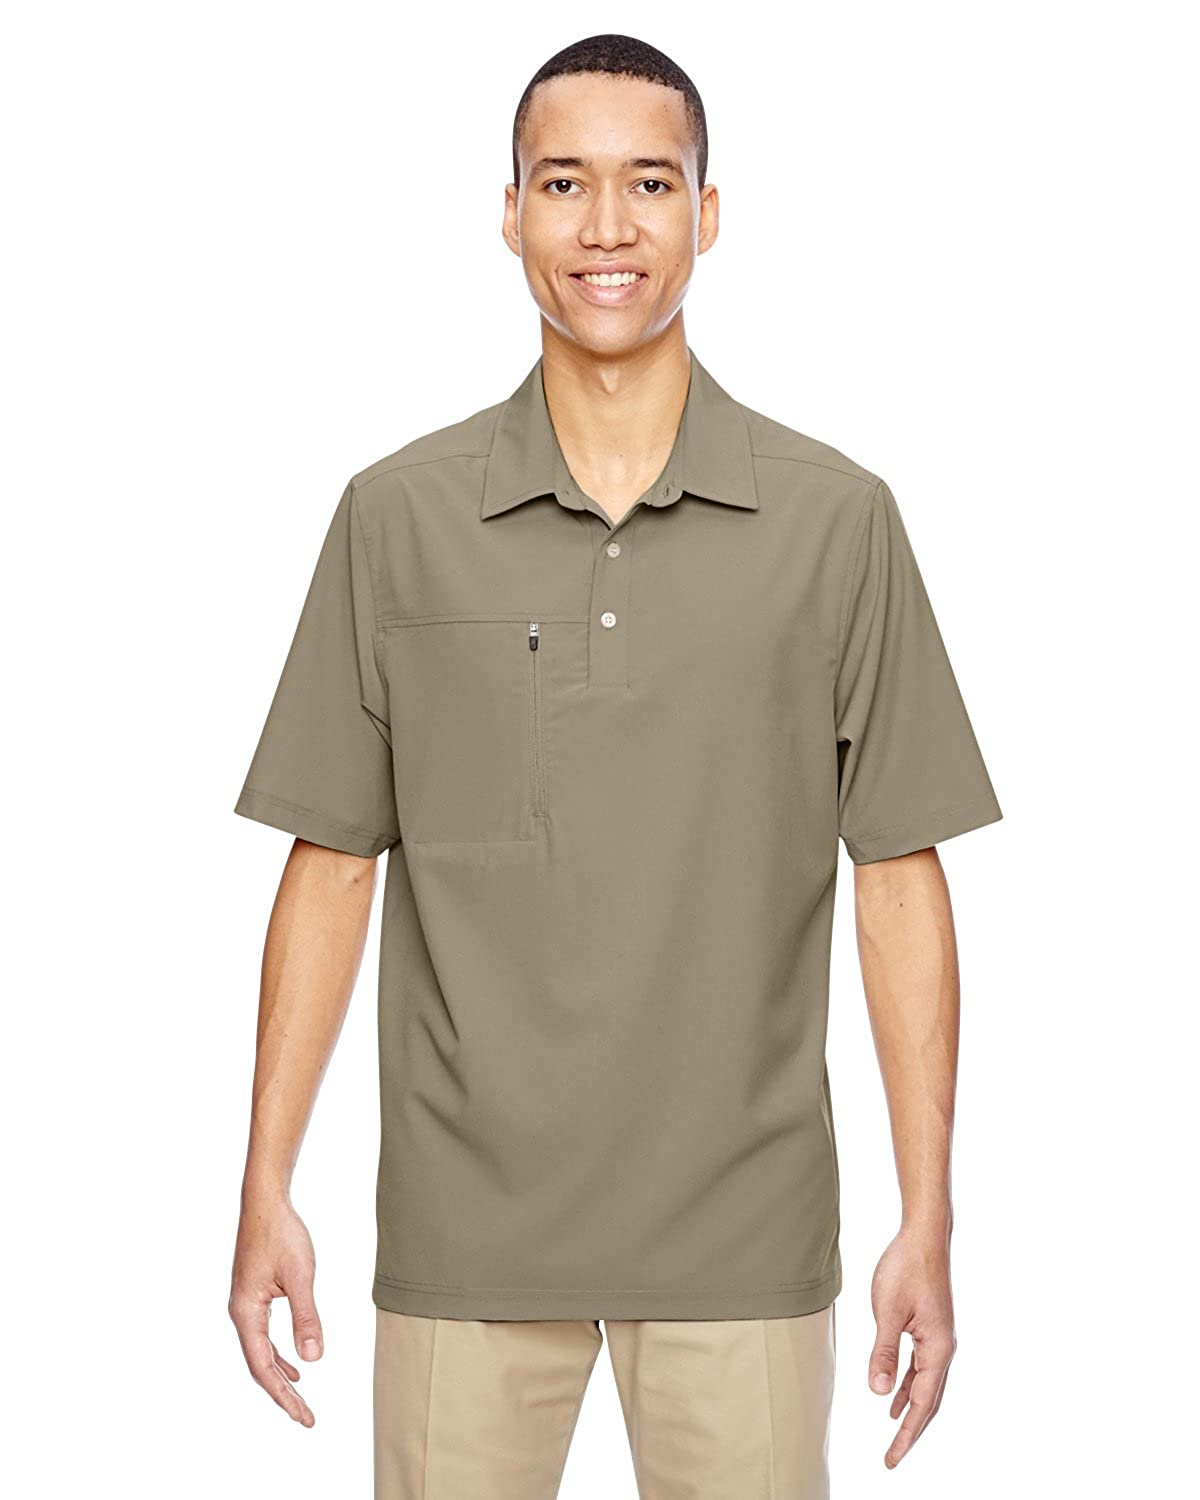 North End 85120 Mens Excursion Crosscheck Performance Woven Polo